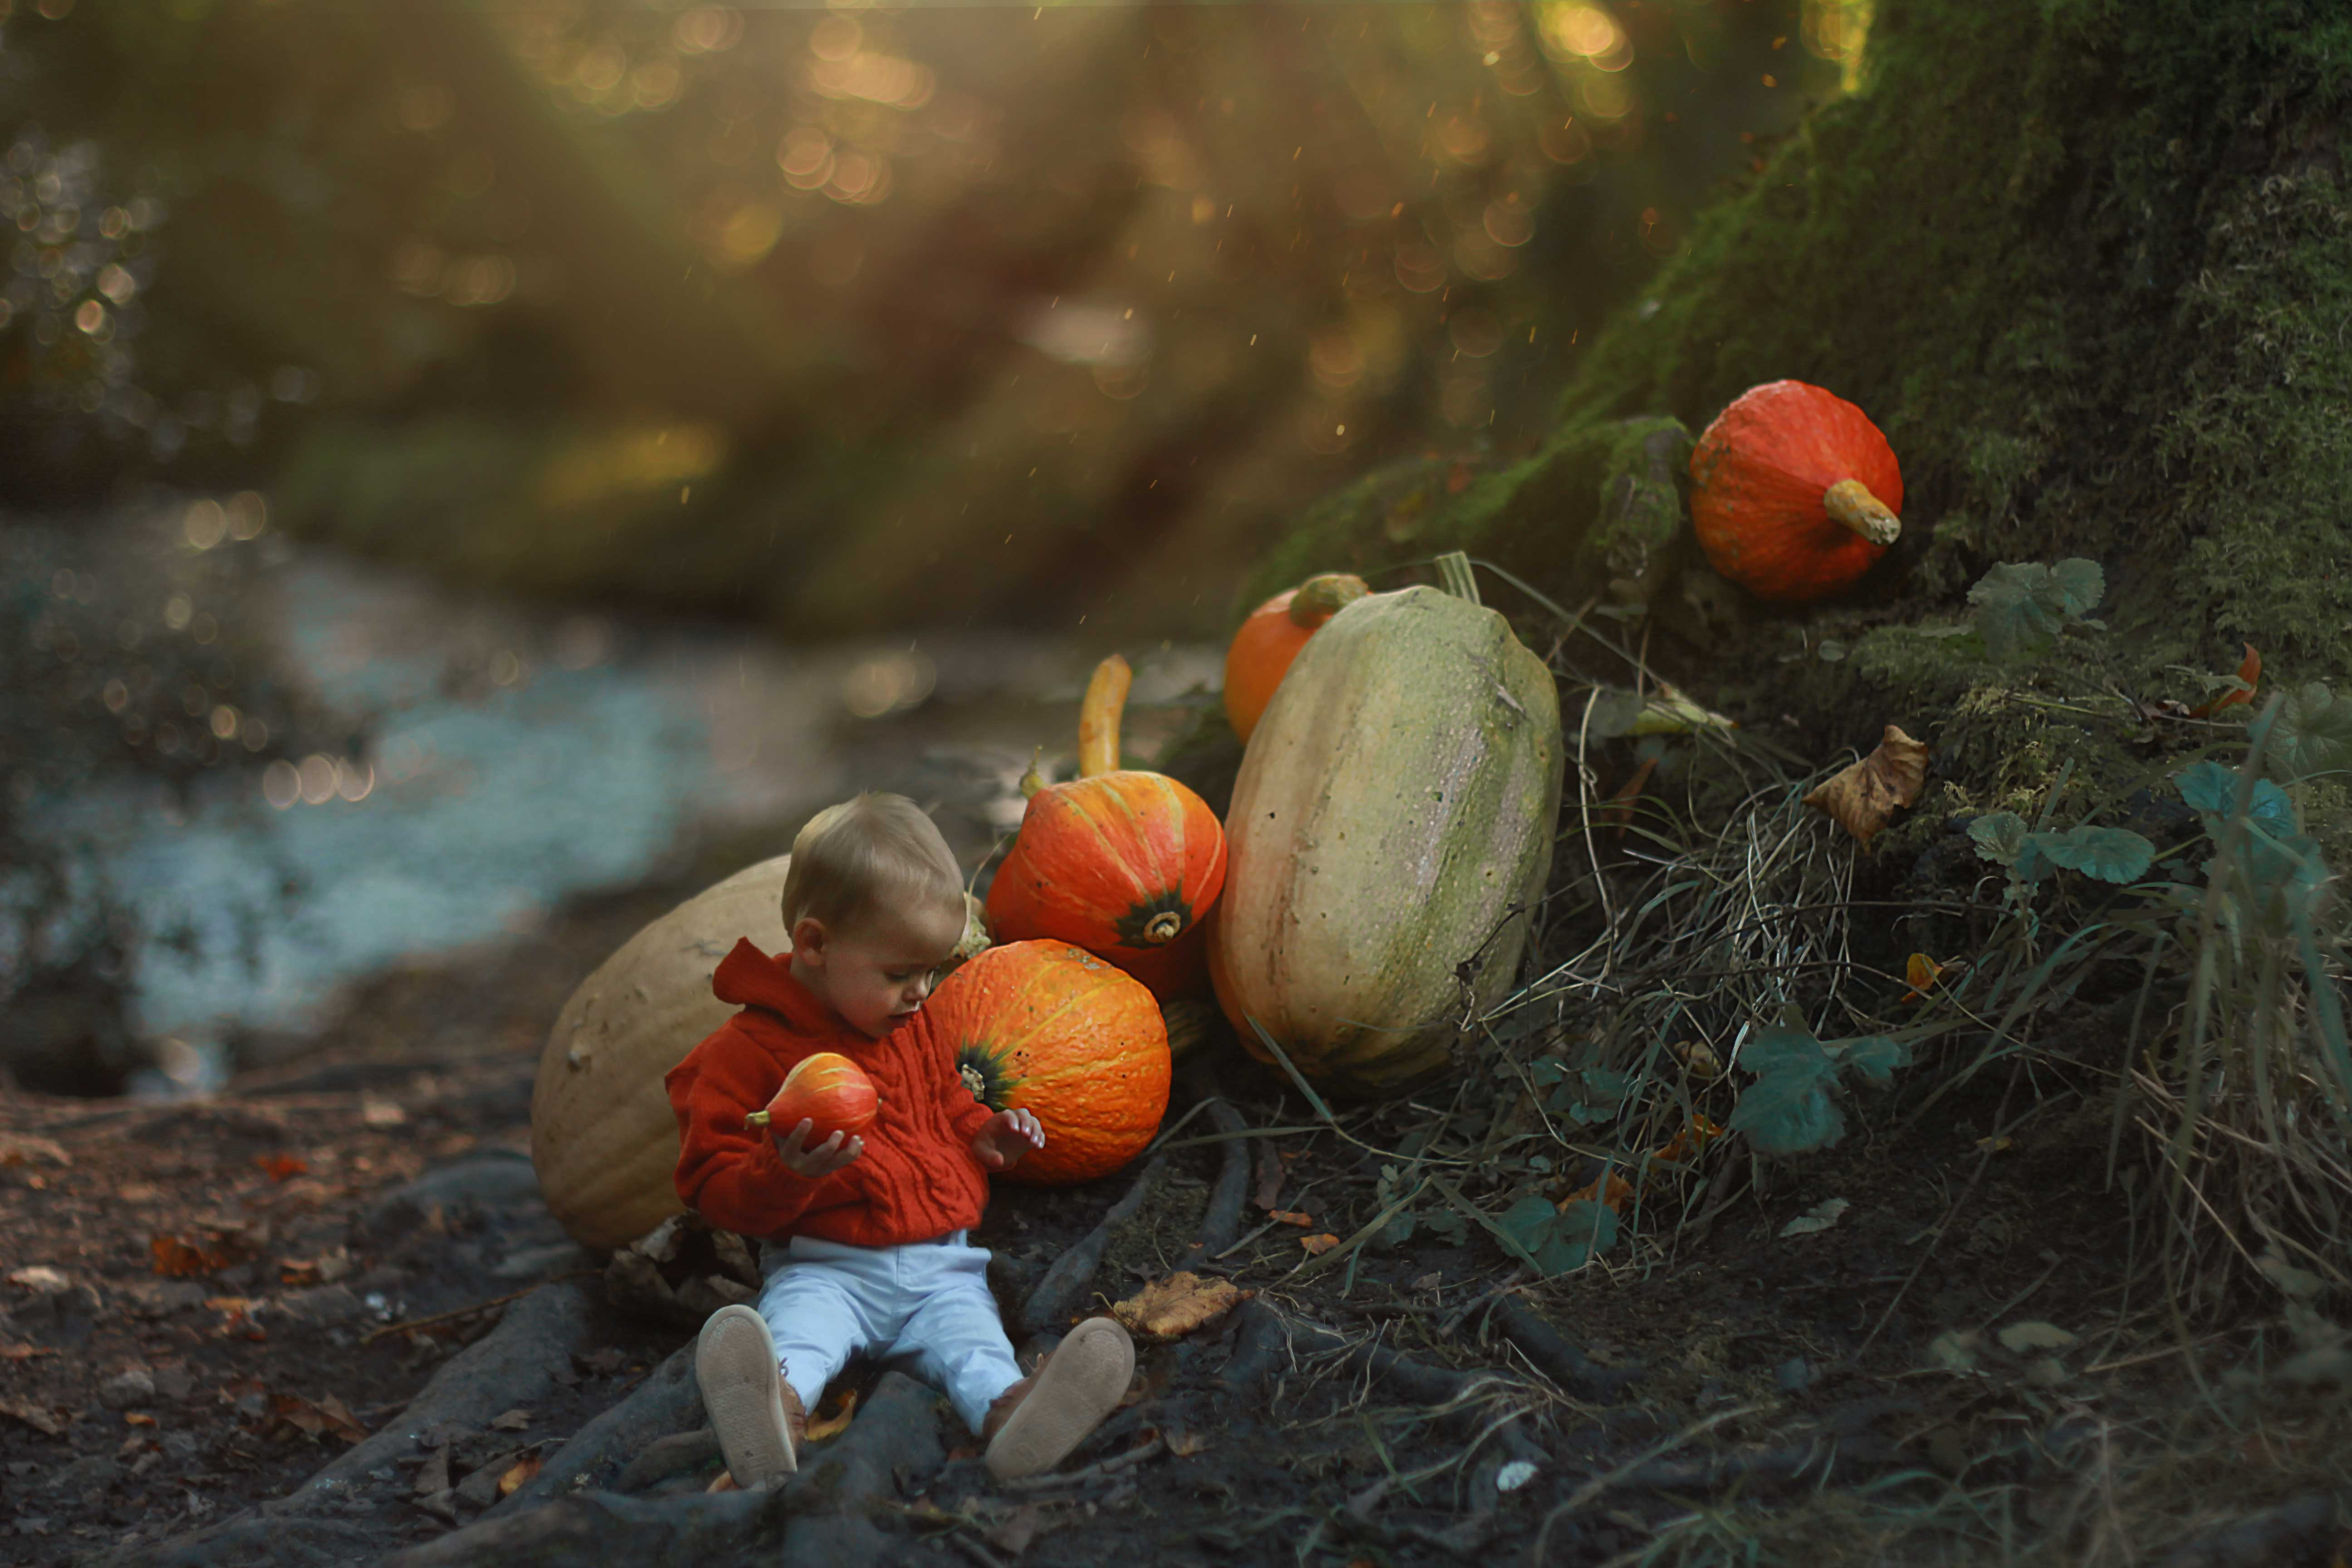 1ST PLACE WINNER - Amy Rothwell with her magical image of small squashes/pumpkins and a 'miniaturised' toddler.